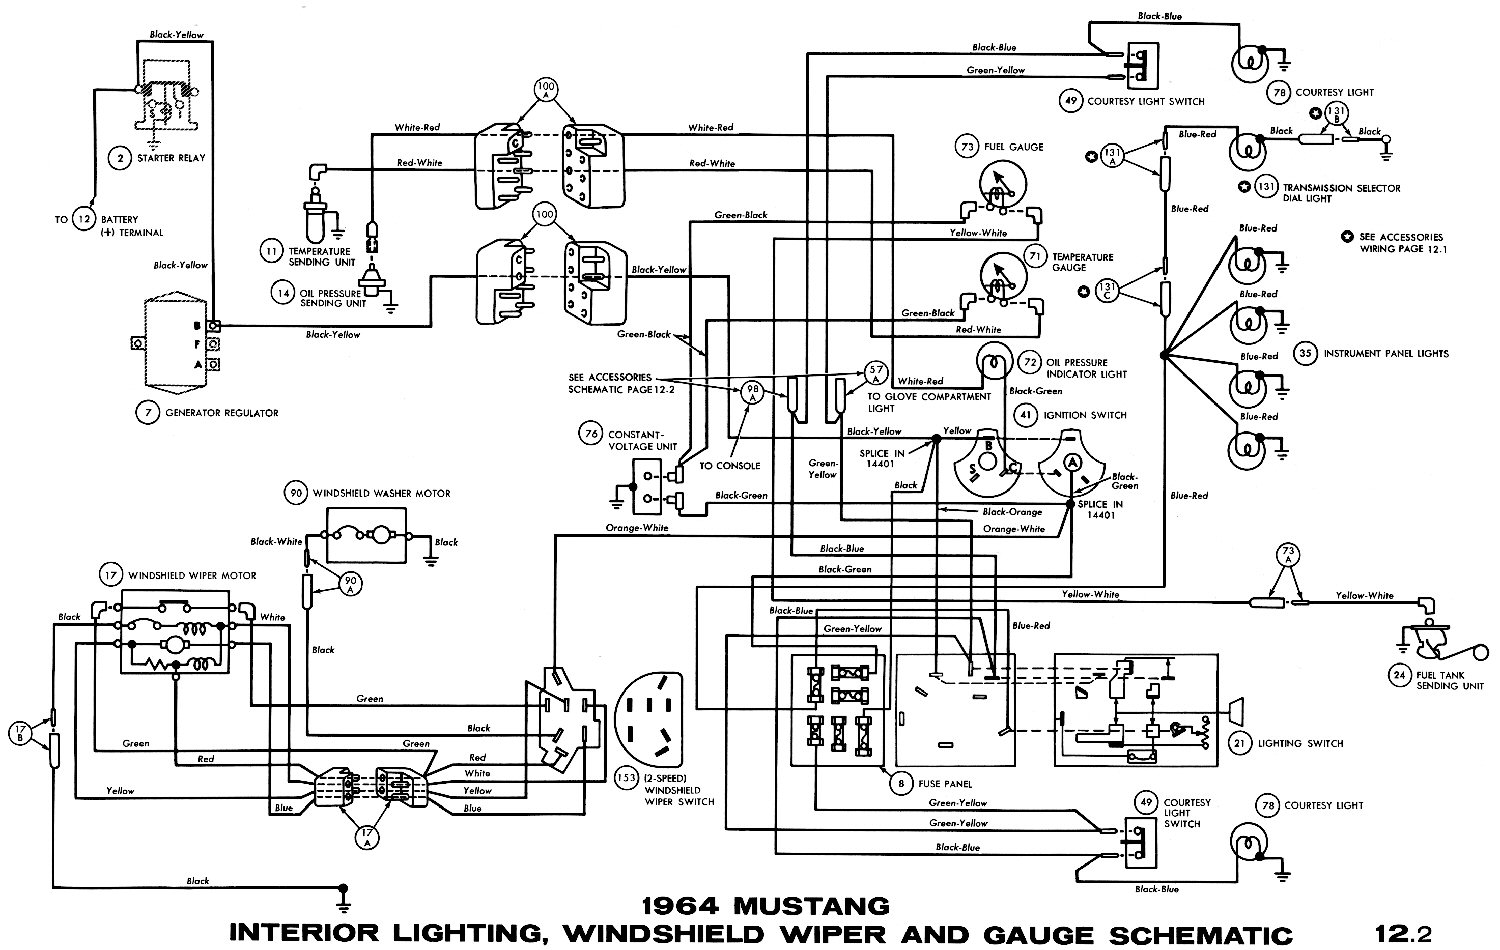 1964k 1966 mustang wiring diagram 1967 mustang wiring schematic \u2022 wiring 66 mustang ignition wiring diagram at soozxer.org